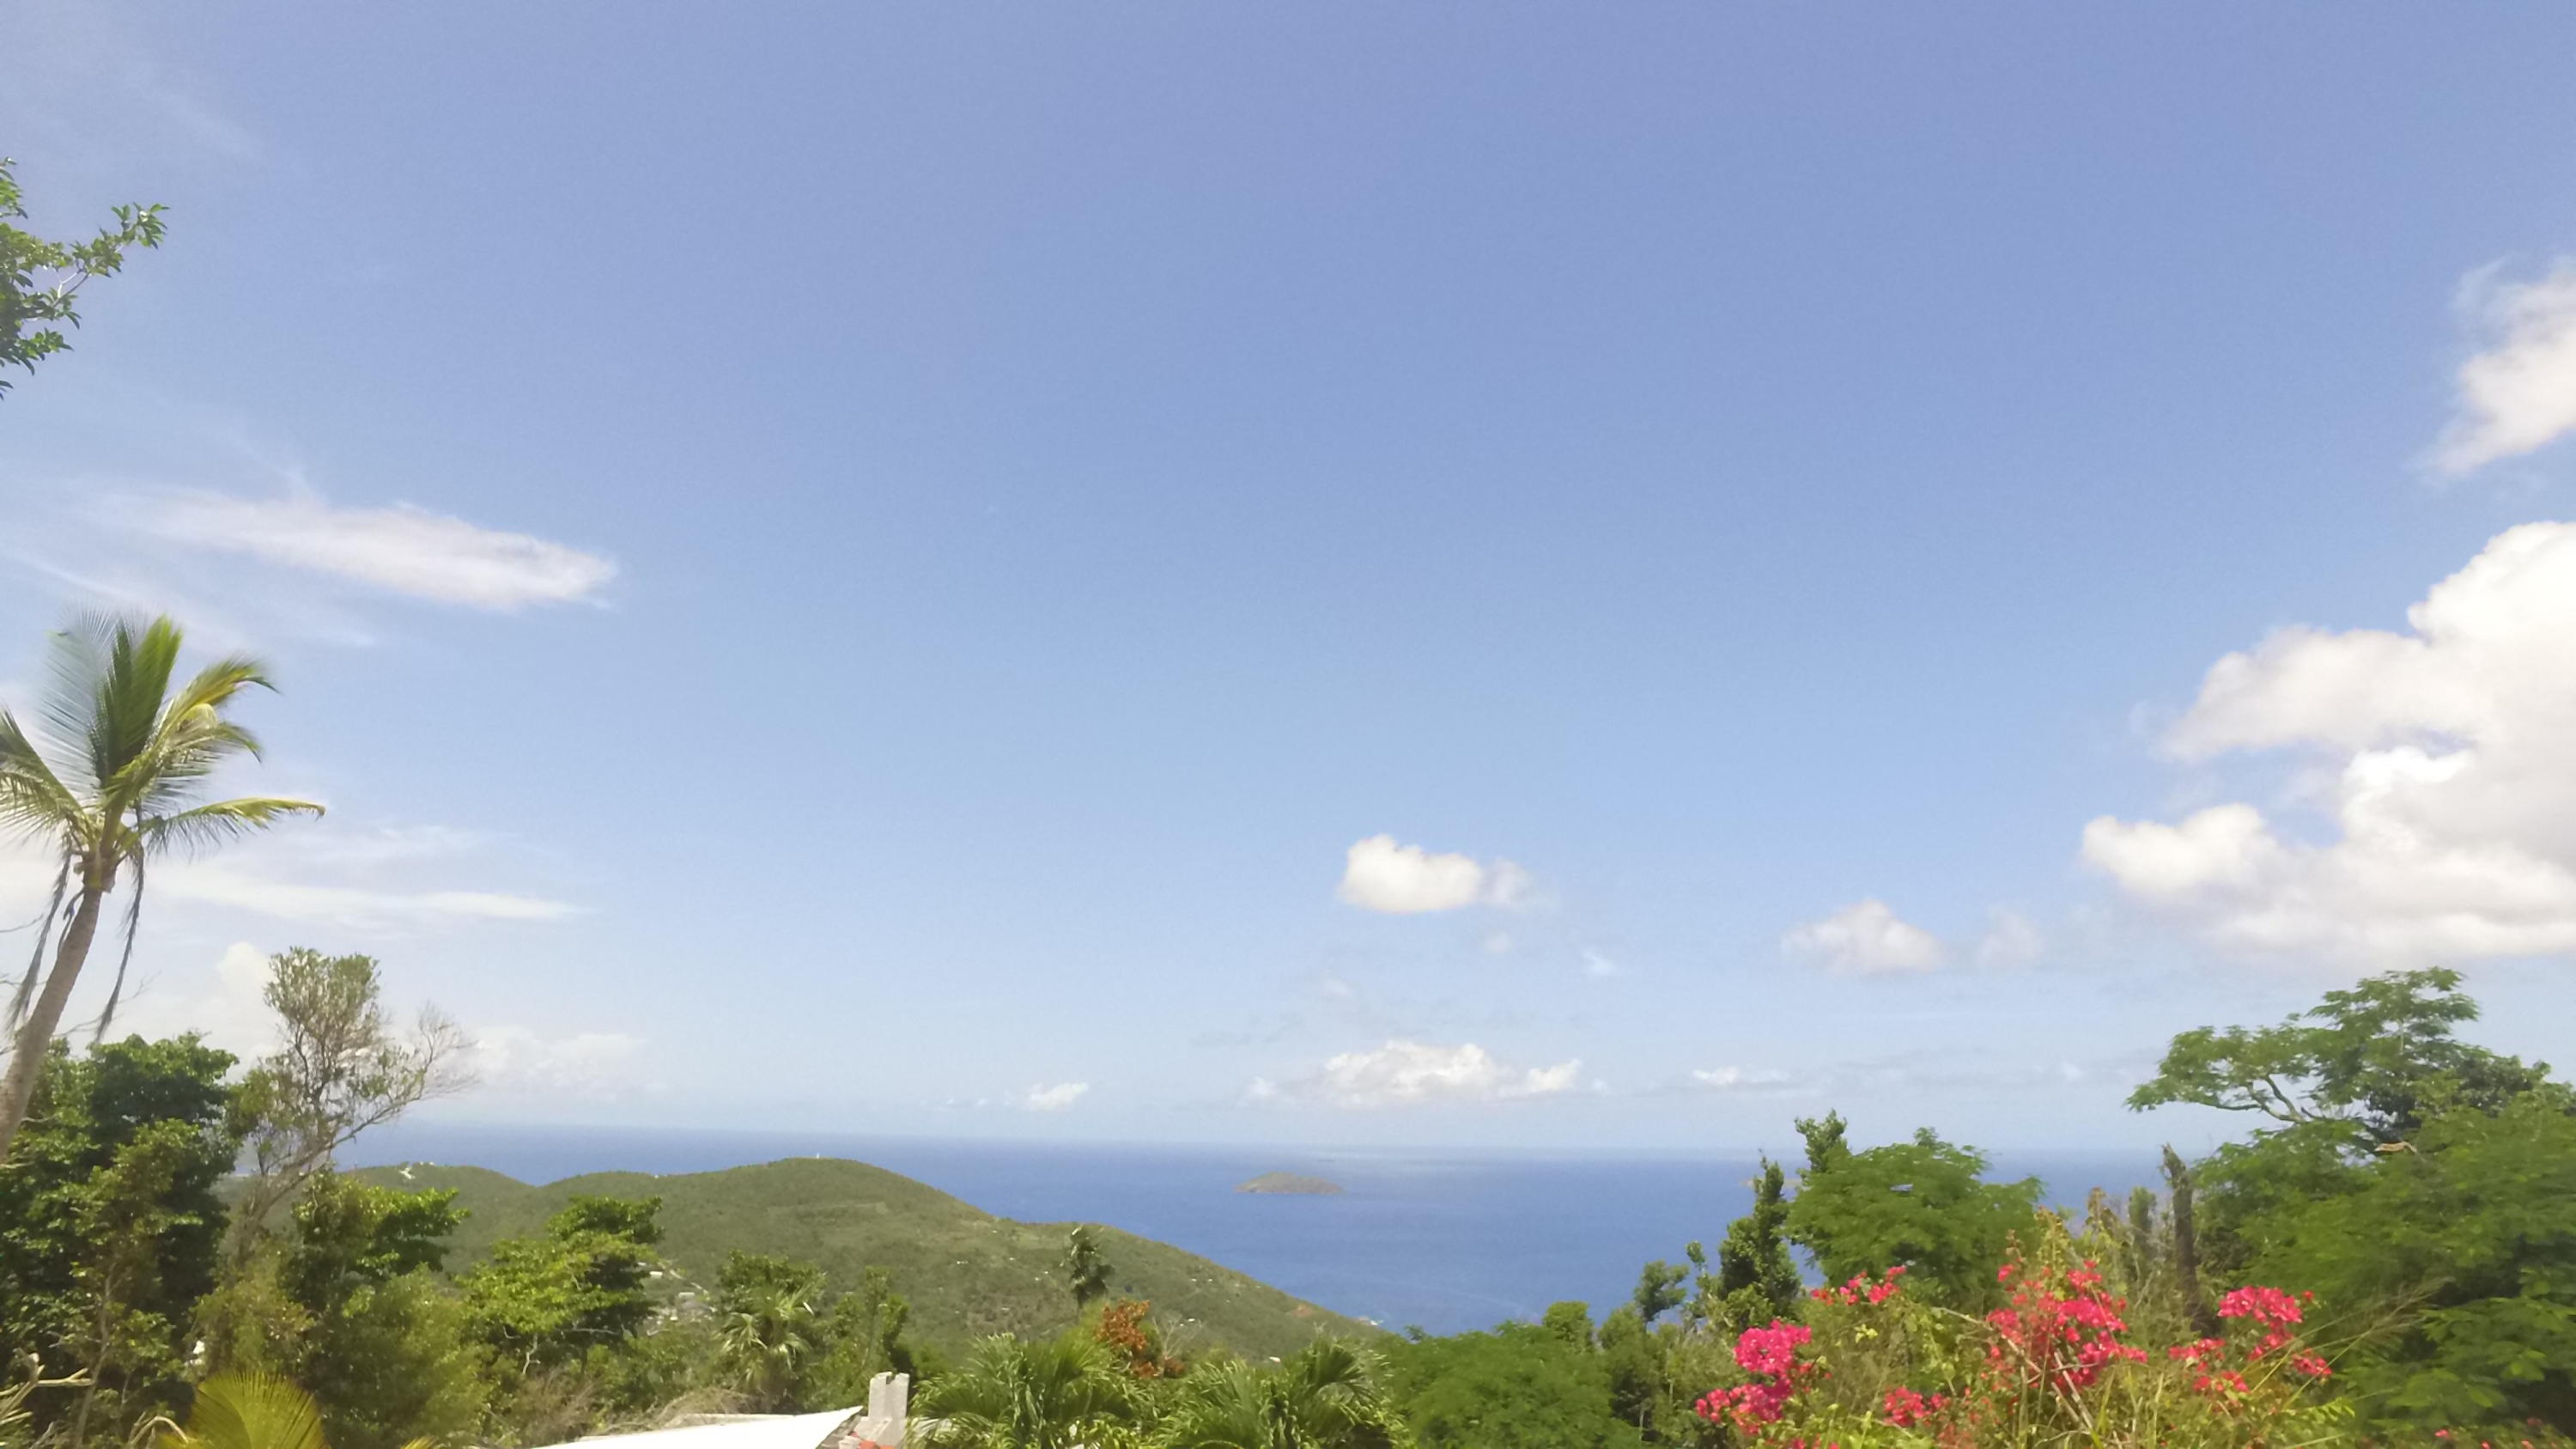 Land for Sale at Address Not Available St Thomas, Virgin Islands 00802 United States Virgin Islands